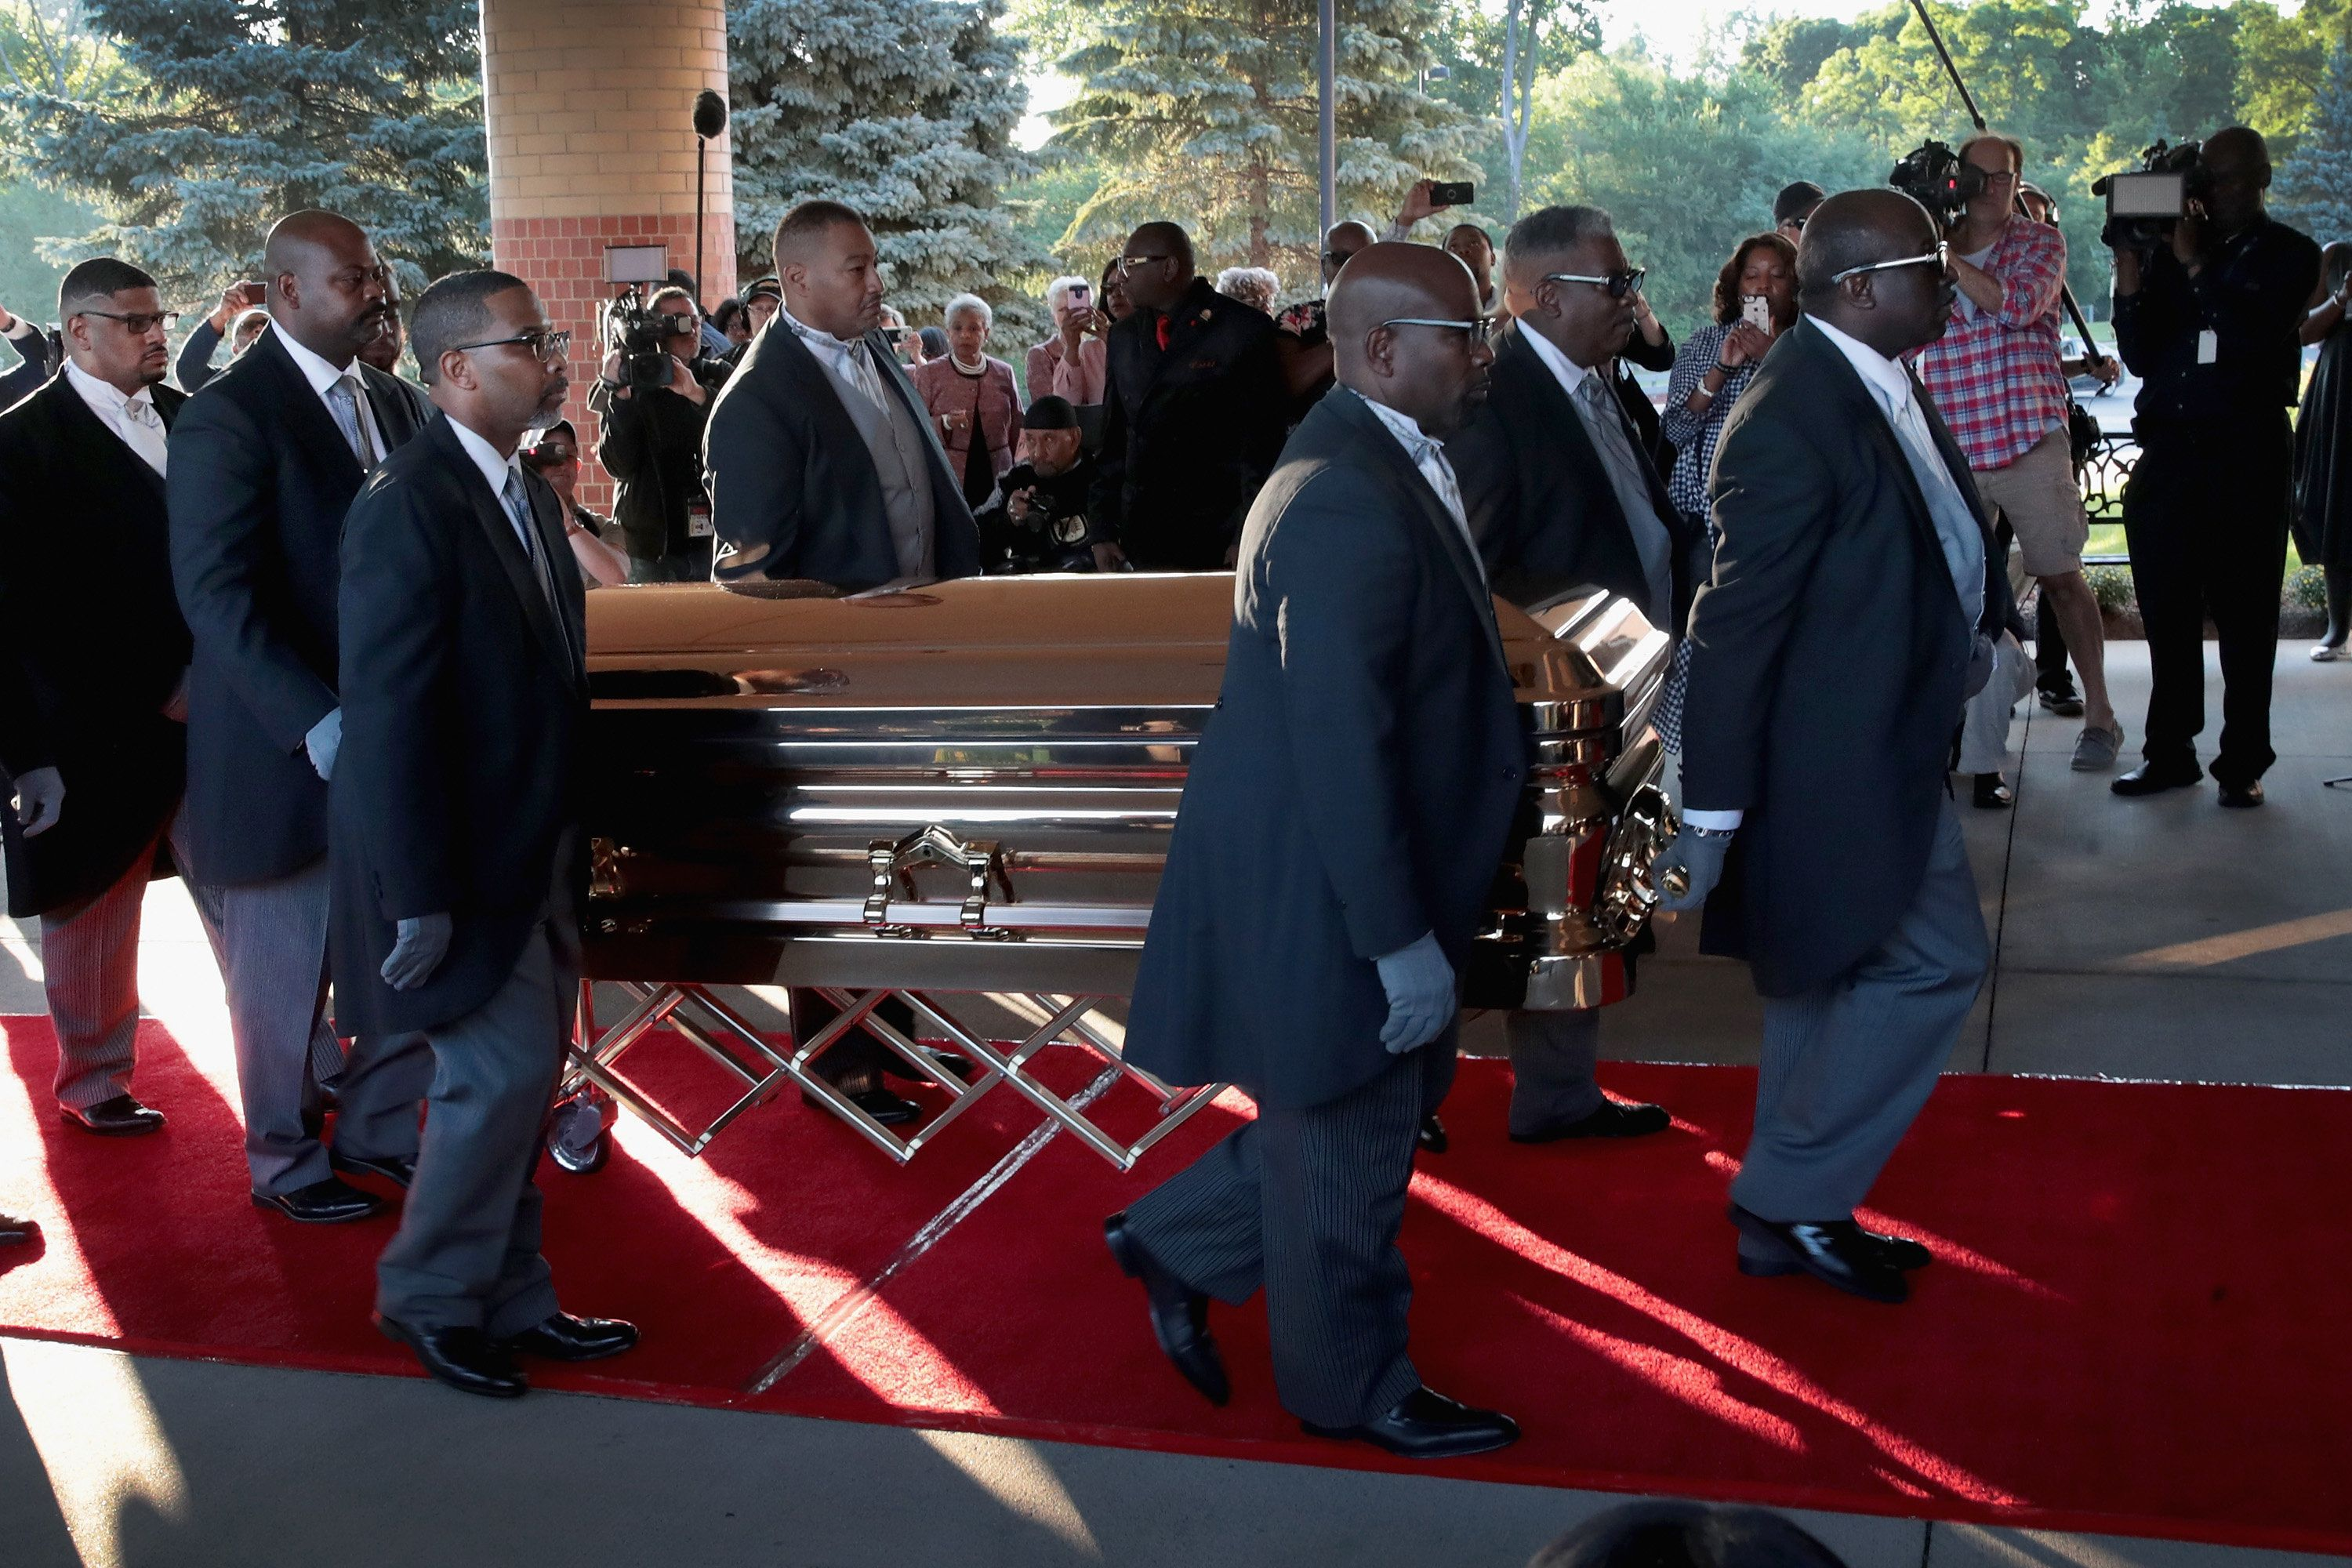 Stars, dignitaries mourn Aretha Franklin at Detroit funeral